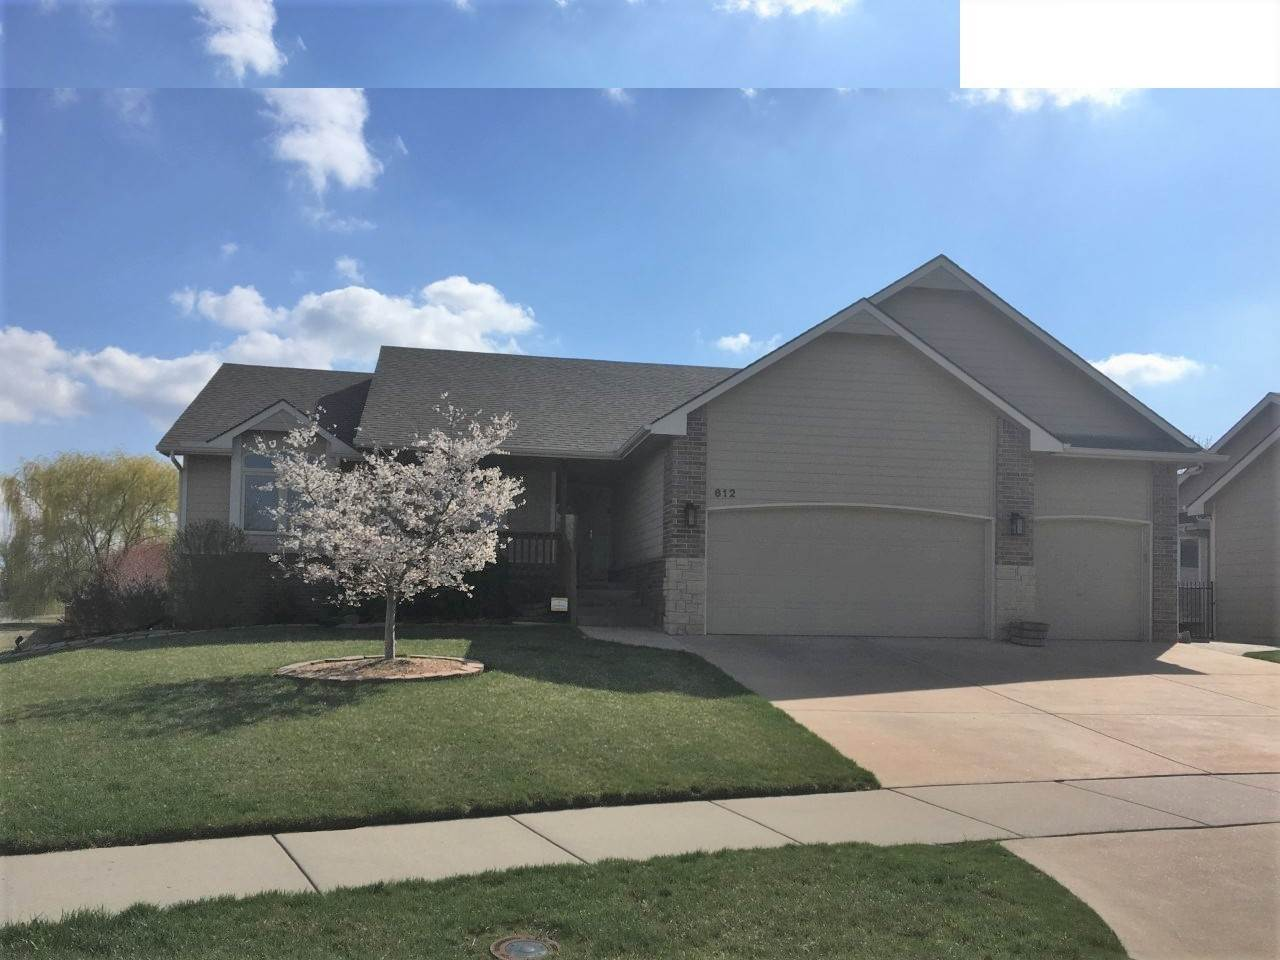 "BRAND NEW YEAR AND BRAND NEW LISTING.  Come see this meticously maintained 5 bedroom home in the popular Crescent Lakes neighborhood.  Tile entry greets you at the front door and leads you into a warm inviting living room in this open concept floor plan.  The living room boasts picture windows plus stone fireplace, perfect for well earned quiet time.  The Dining area has a wall of windows and is adjacent to the kitchen. Access to the covered deck is through sliding glass doors in Dining area, perfect for outdoor fun and entertaining.  The kitchen with its warm cabinetry, ample work space and breakfast bar make family meal preparations easy.  The main floor laundry is conveniently tucked between the kitchen and garage.  The Master Suite has a  walk in closet, and private bath with shower, jacuzzi bath and dual vanities.  Two additional bedrooms share the hall bath.   The view out lower level is complete with large family room, 2 additional large bedrooms, bath and storage.  Numerous upgrades include all LED lighting throughout the home, ""Smart"" Garage Doors, Epoxy garage floor,  Ring-Doorbell system, Commercial Sysco Wi-Fi CAT 6, Alarm System is active and can be transferred. Water Softner remains.  Crescent Lakes families enjoy 5 private stocked lakes, 2 community pools, clubhouse, playground, sidewalks that wind through the neighborhood and take children across the street to the highly rated Andover Central schools, K-12.  There is also a city park which hosts live concerts during the summer and fall.  Andover is also home to the newest and largest YMCA in the area complete with a waterpark."